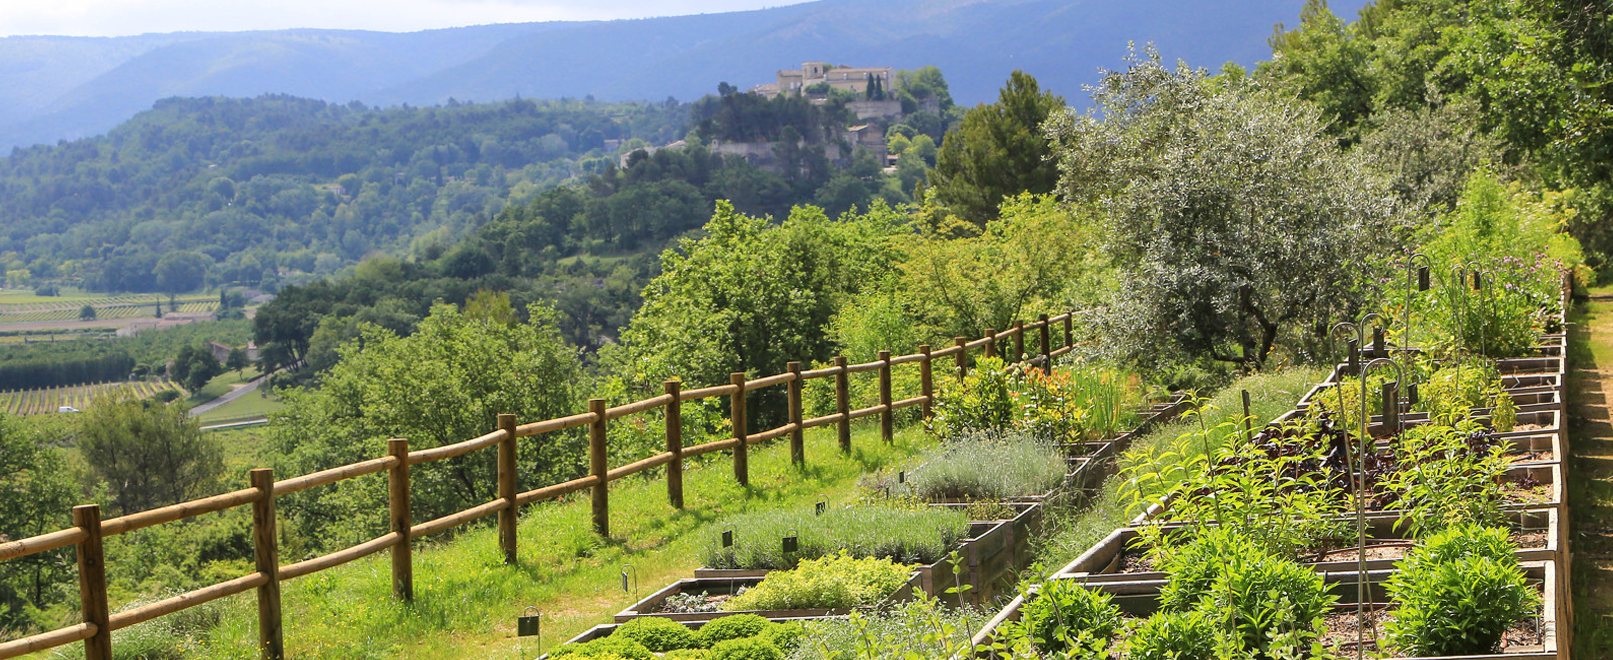 Botanic discovery at the Domaine de la Citadelle